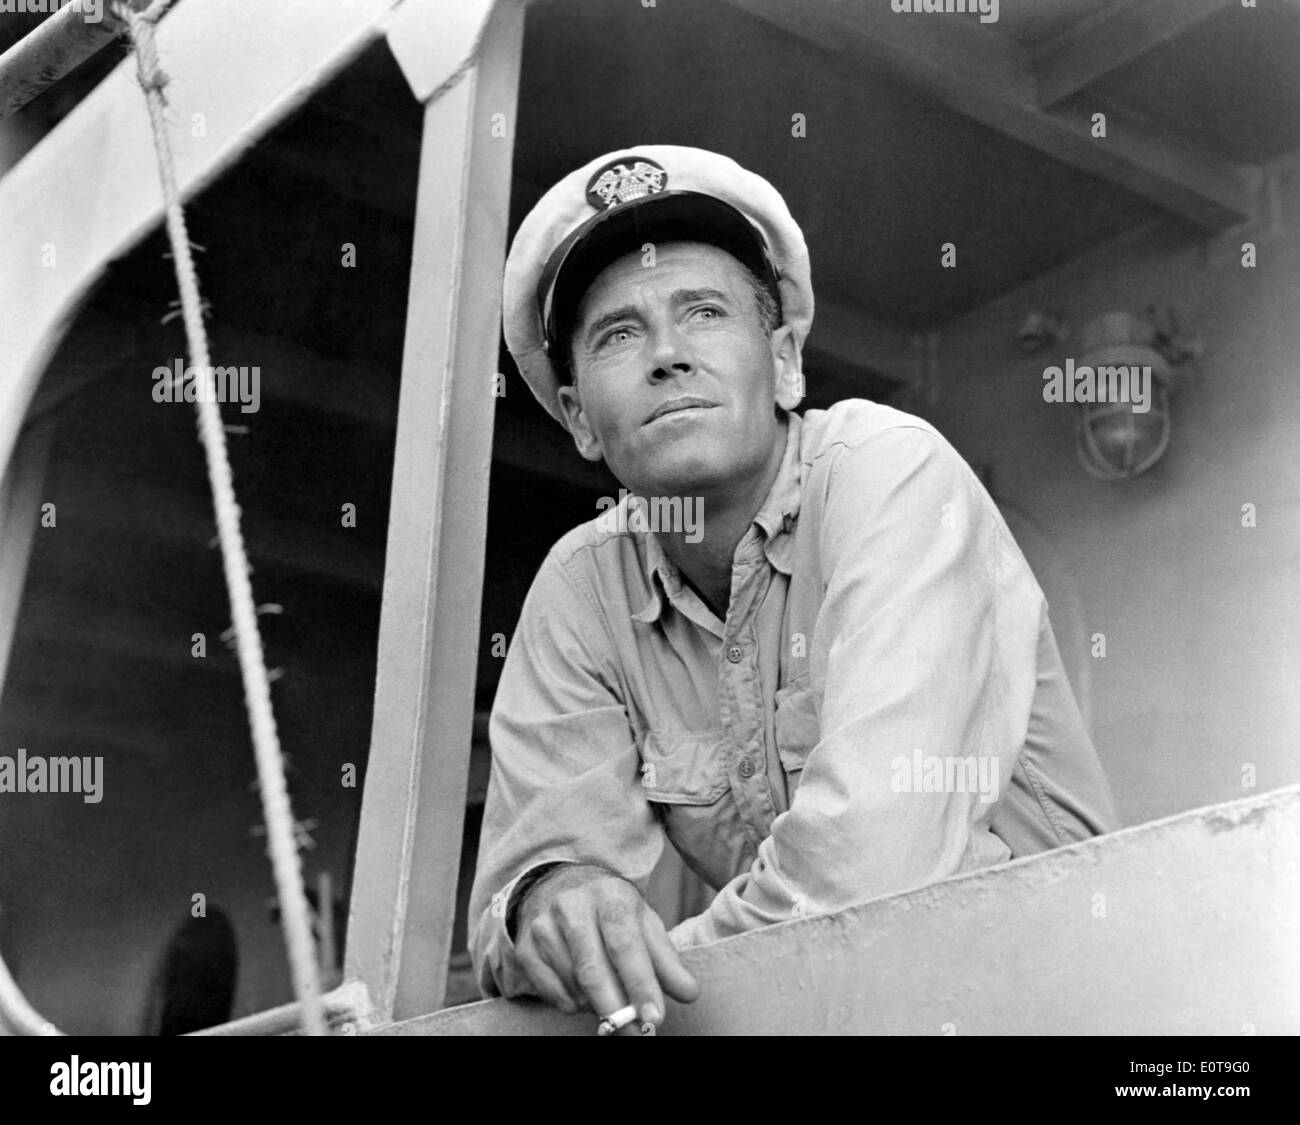 Henry Fonda, on-set of the Film, 'Mister Roberts', 1955 - Stock Image